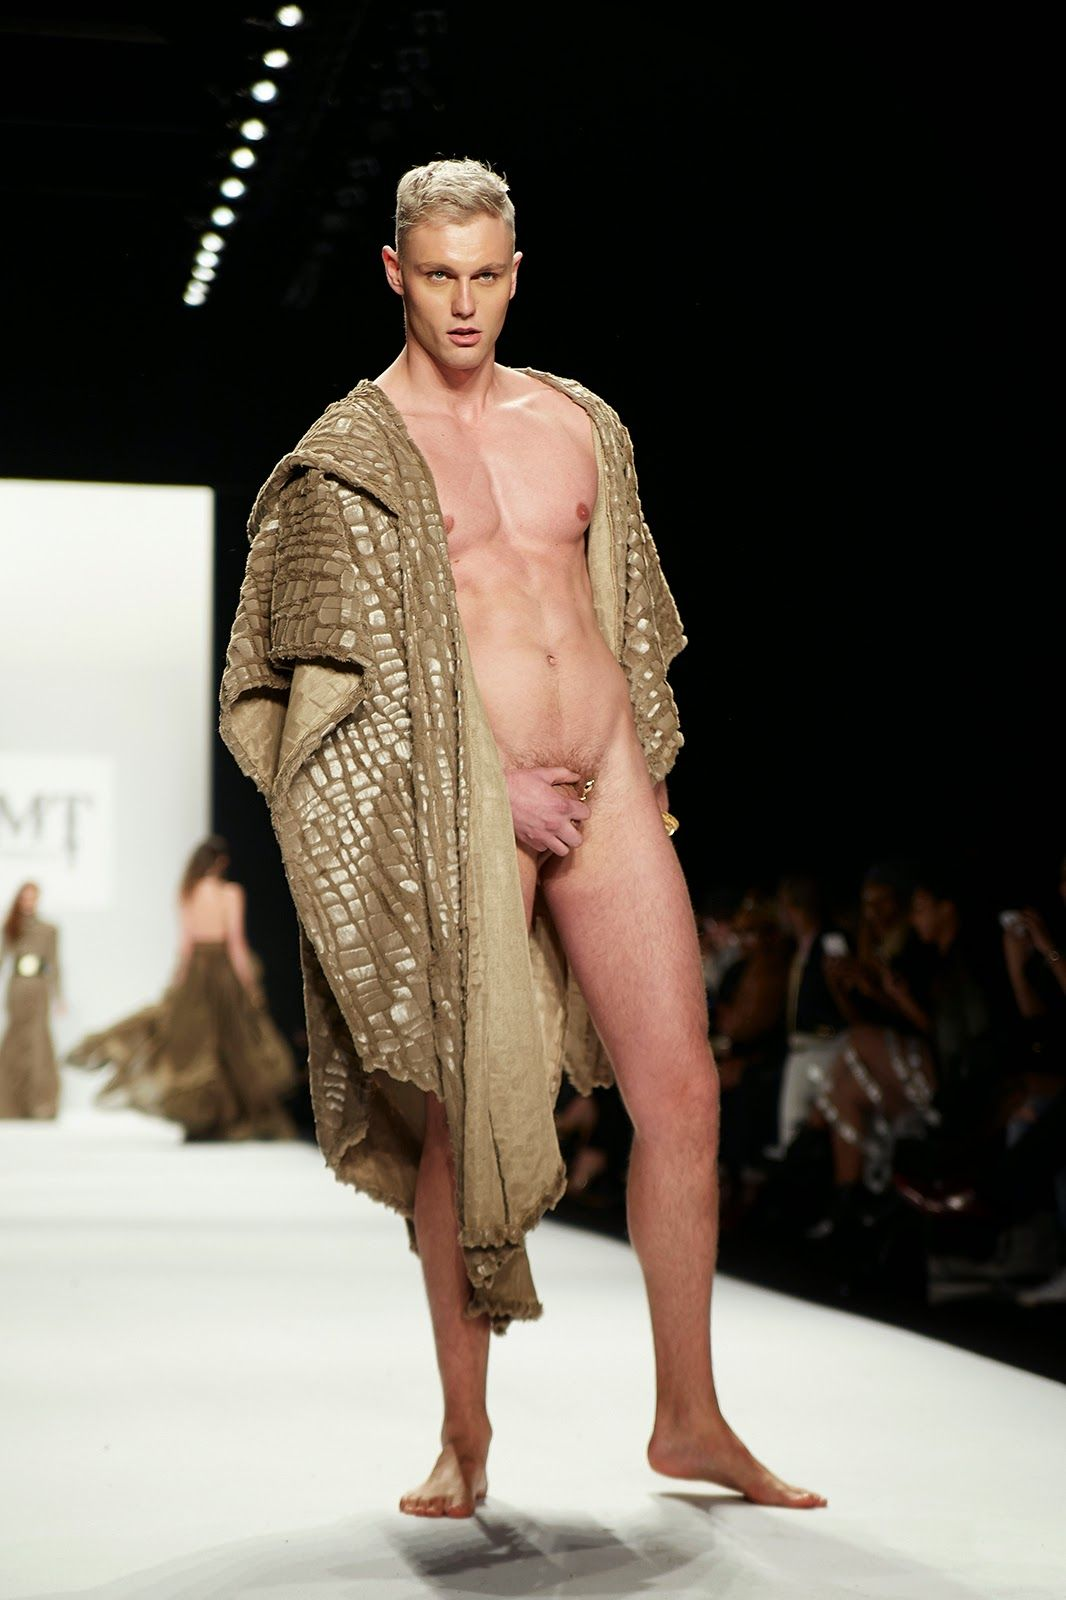 fashio show male Naked